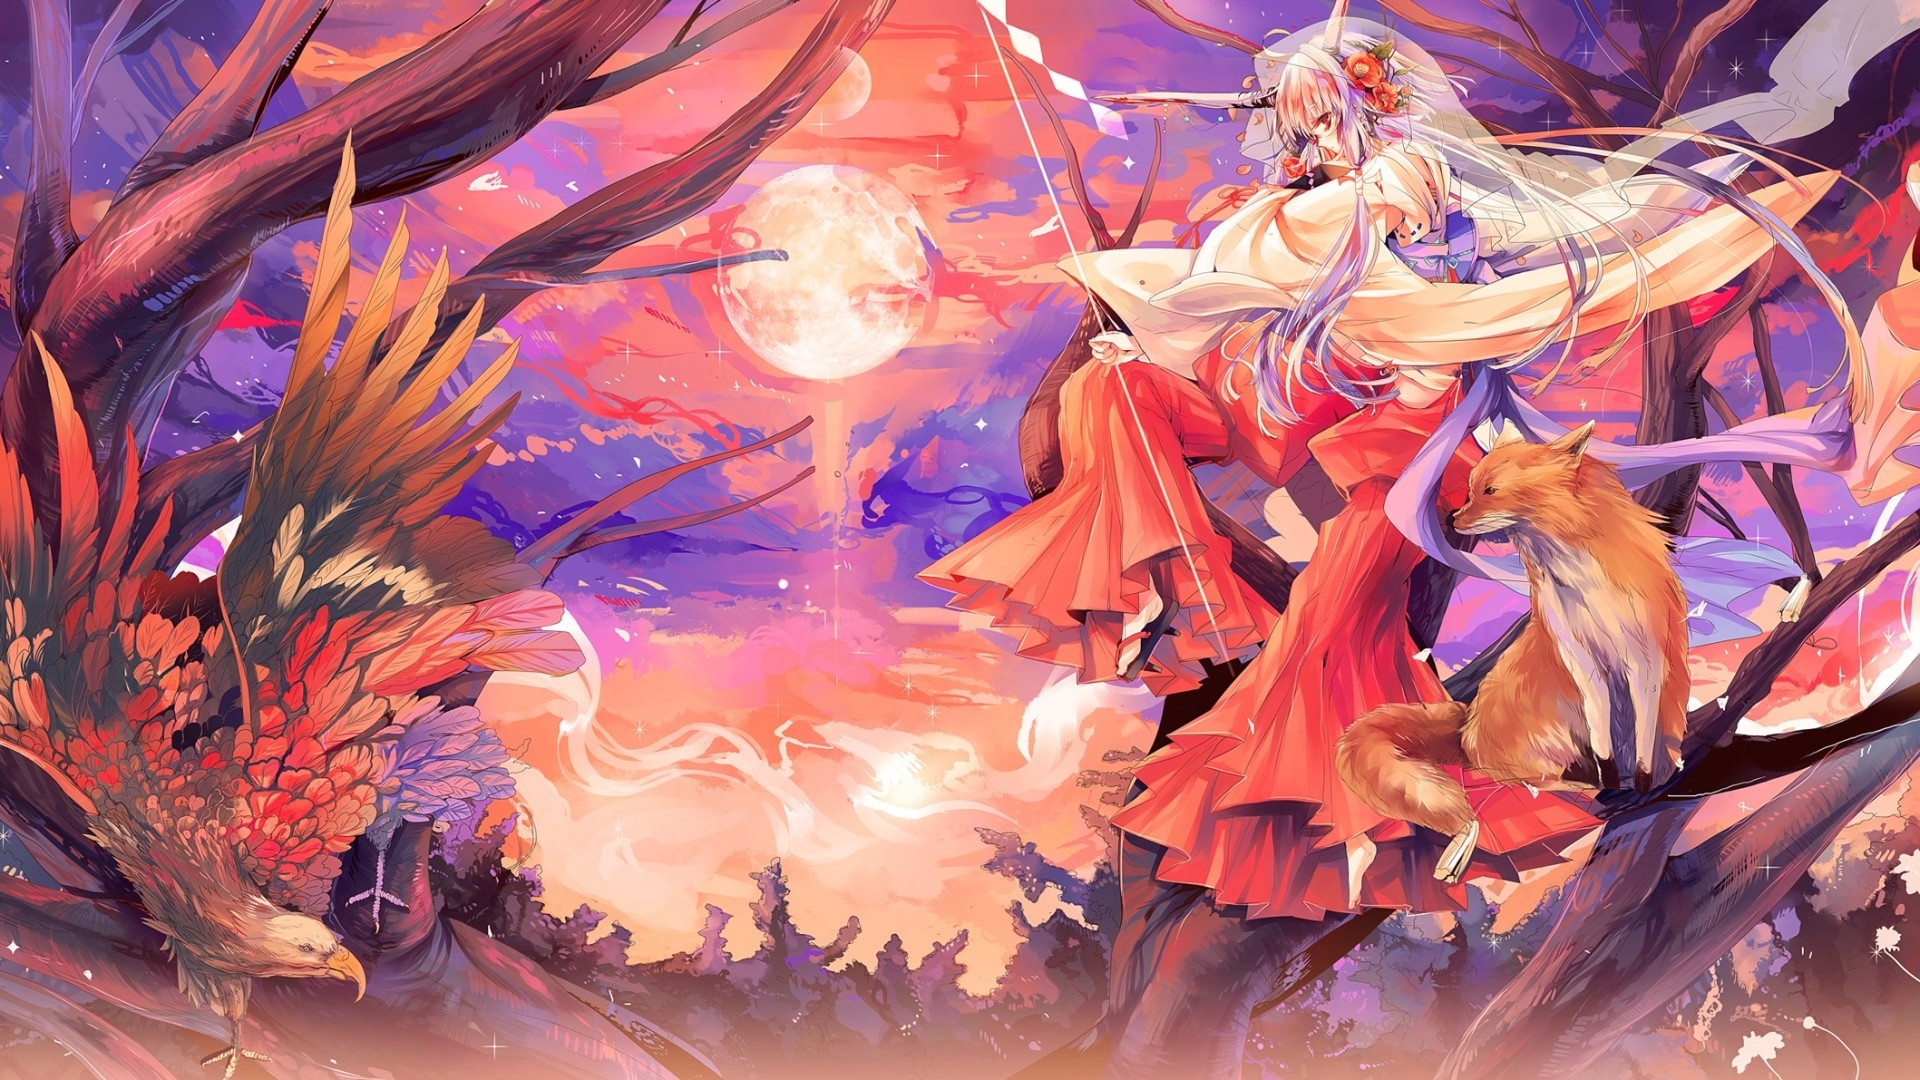 1920x1080 Full HD 1080p Kitsune Wallpapers HD, Desktop Backgrounds  .